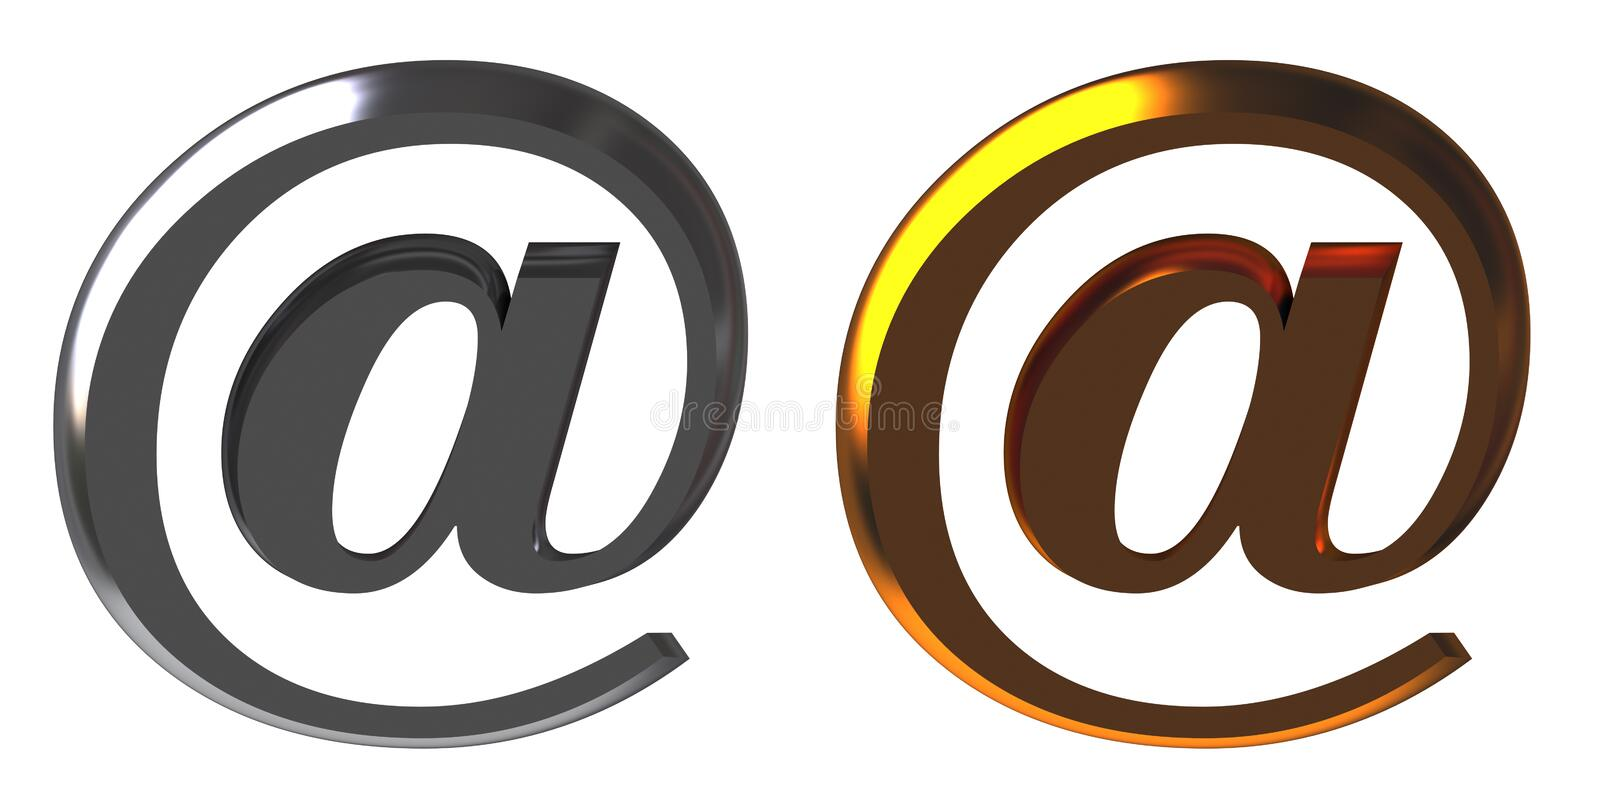 Chrome and gold email alias vector illustration